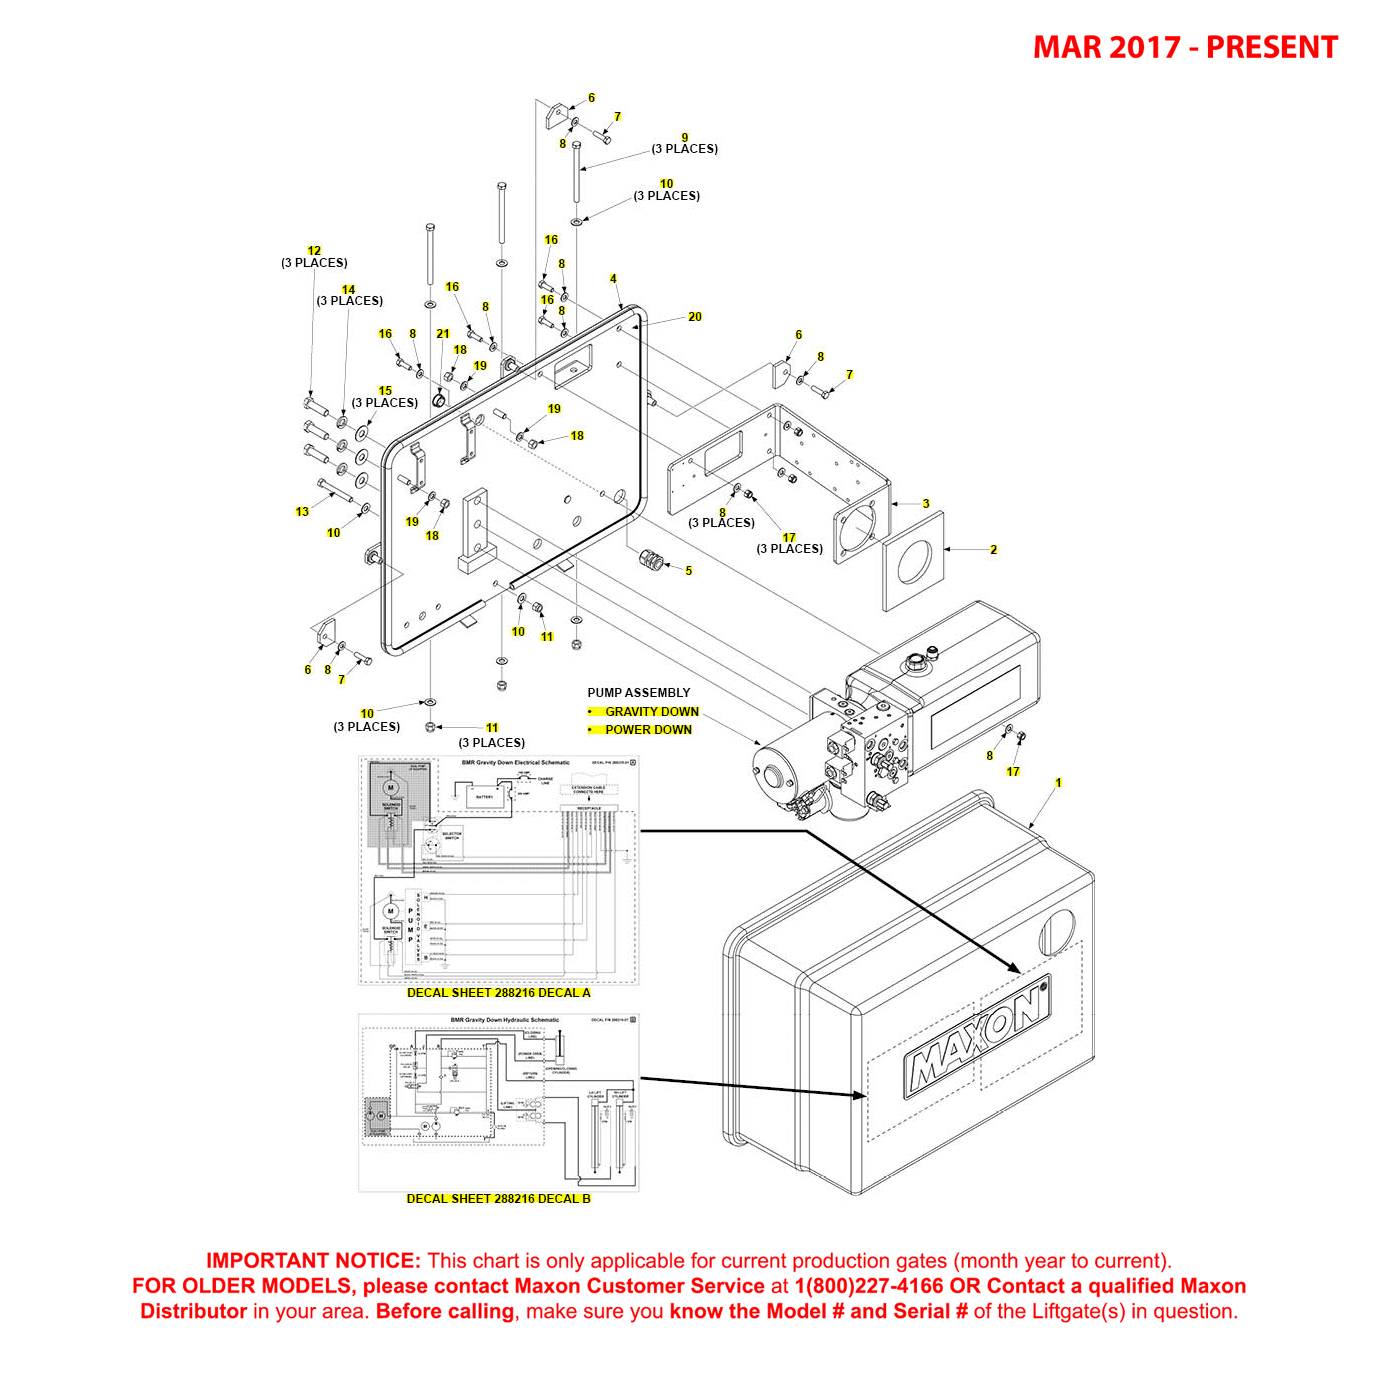 BMR (Mar 2017 - Present) Bucher Hydraulics Pump Cover Mounting Plate Assembly Diagram